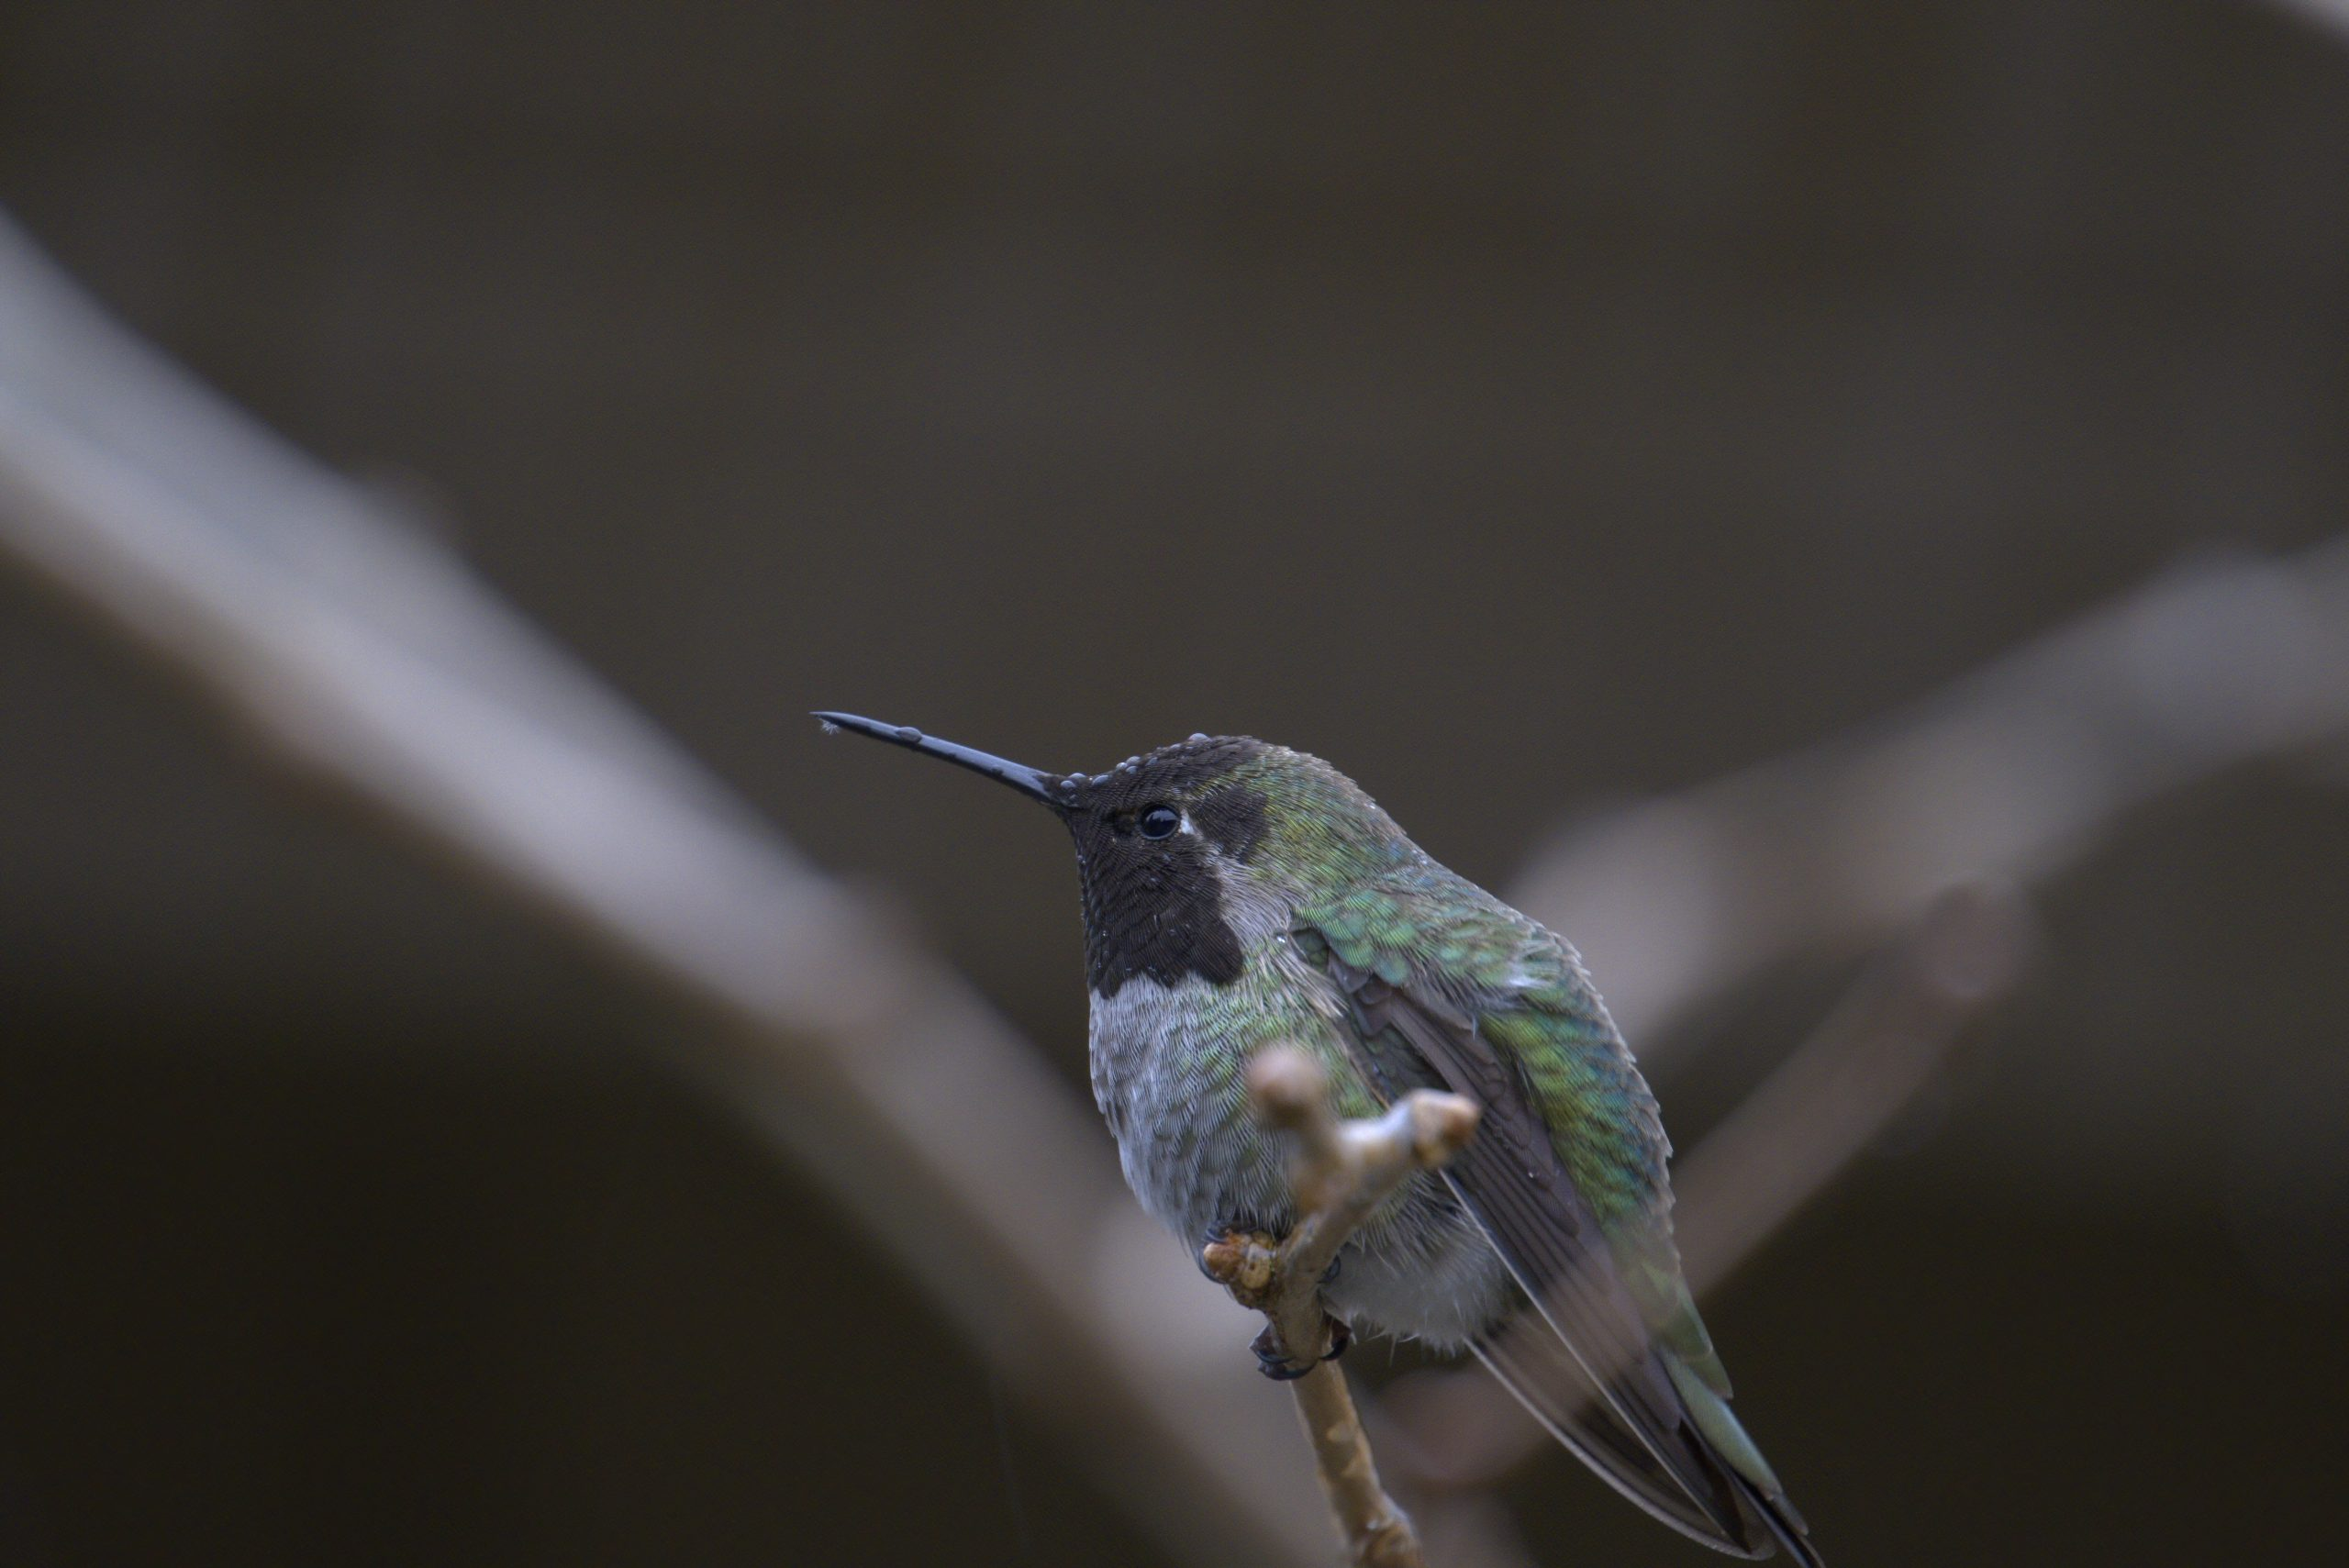 Hummingbird 11 Feb. 2021 Oregon Copyright Steve J Davis